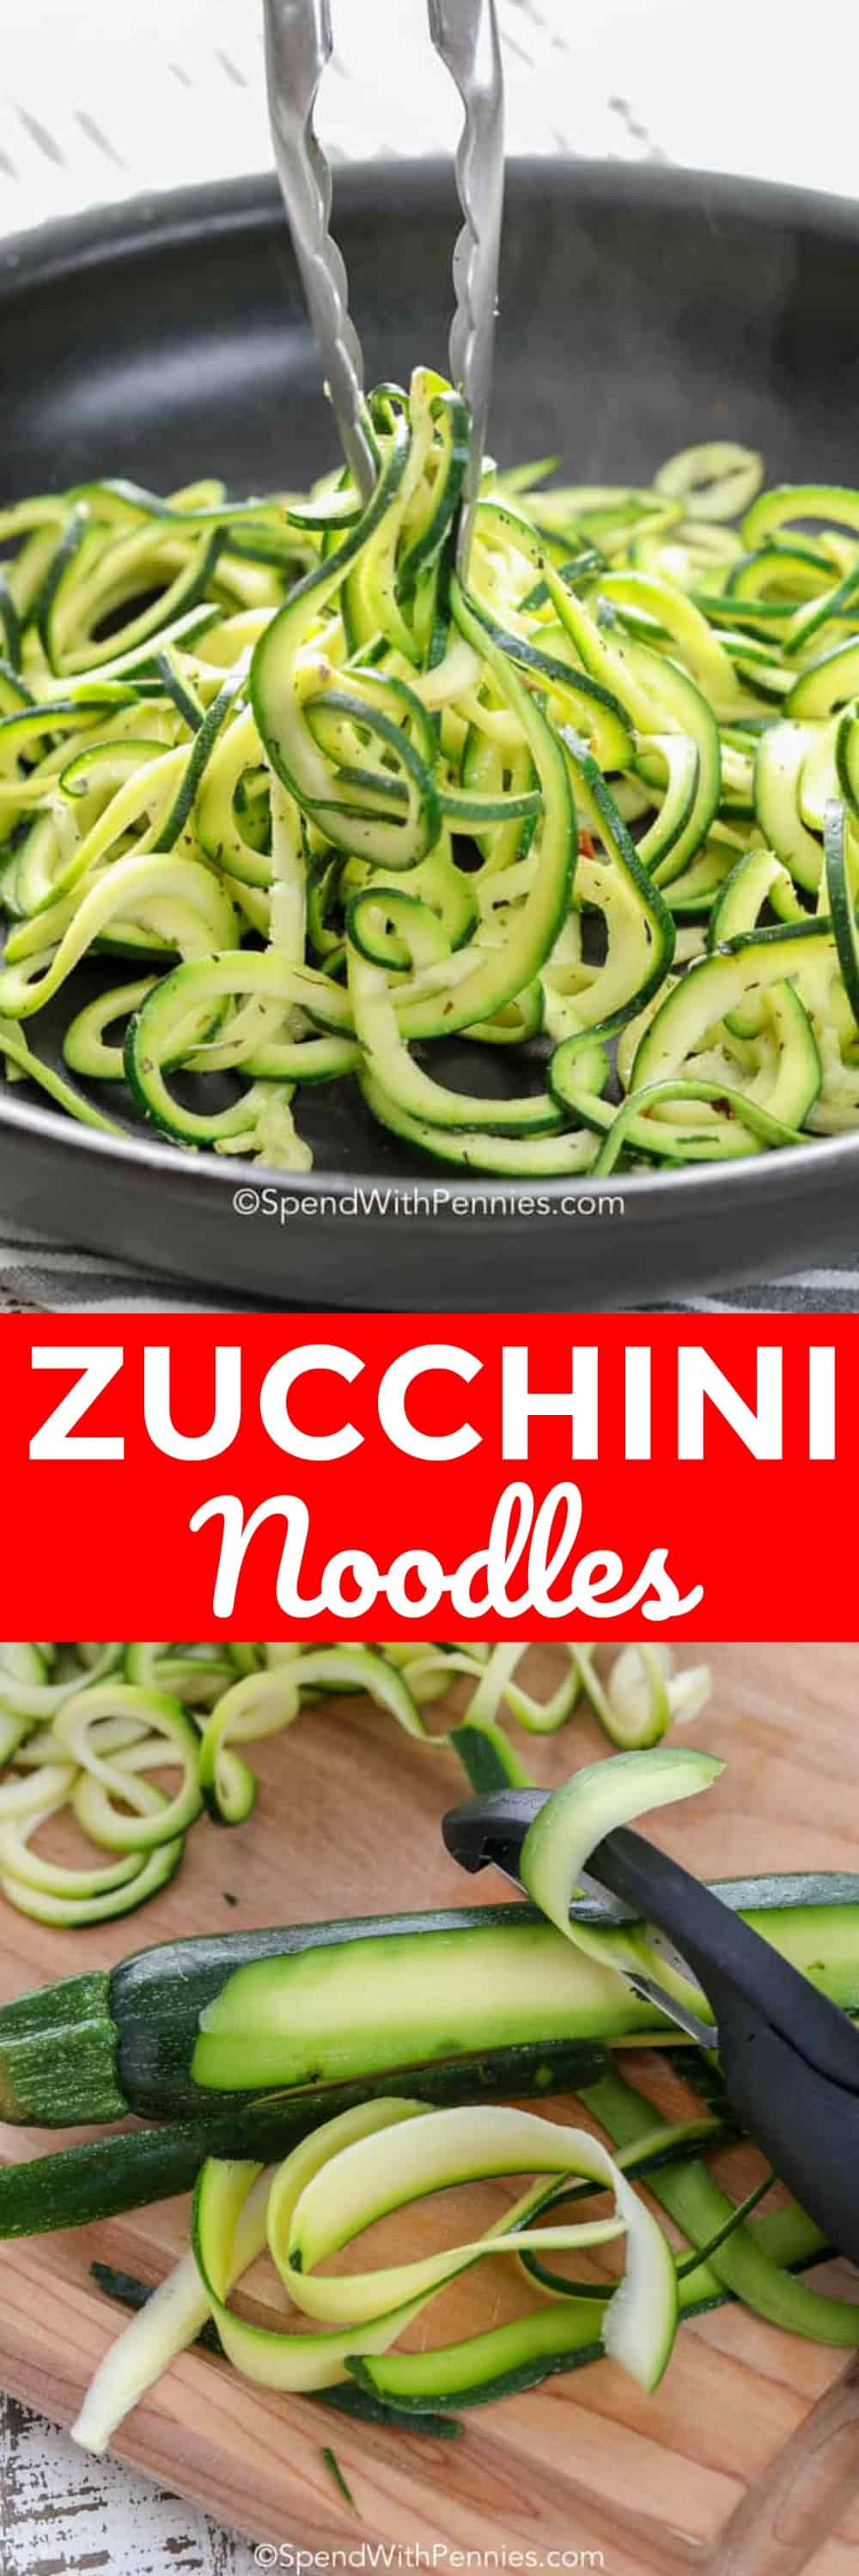 Zucchini Noodles with writing